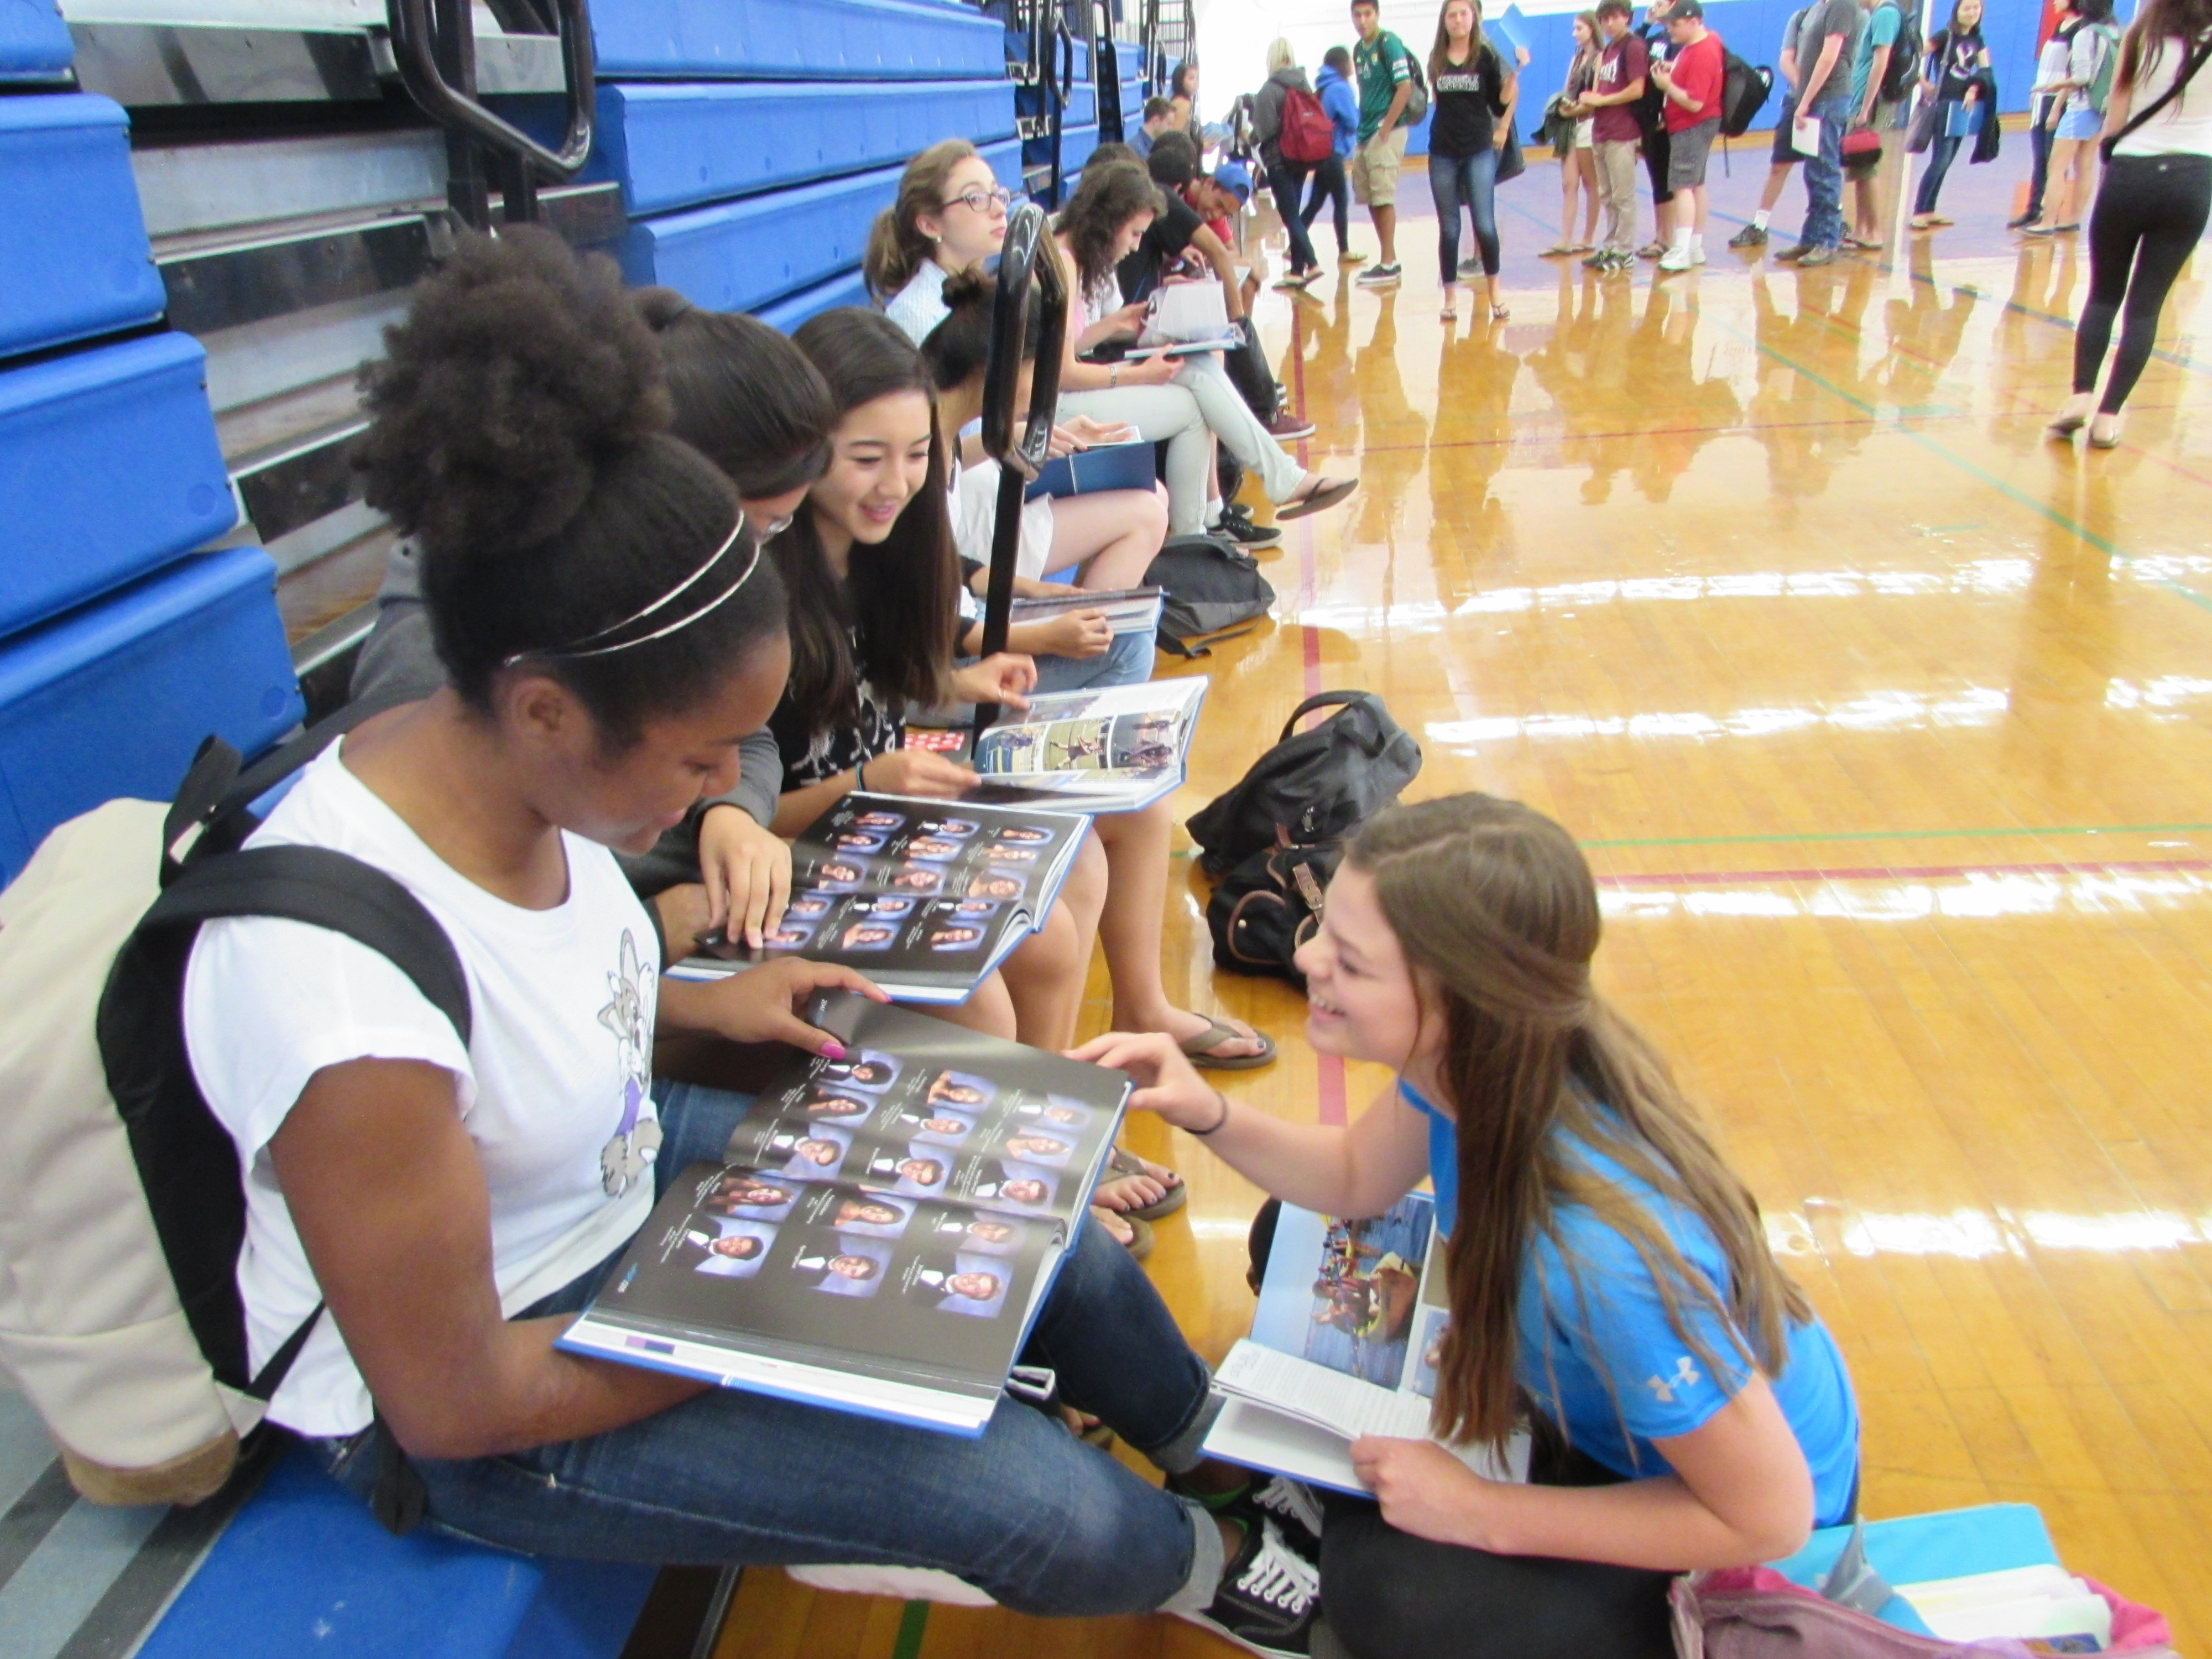 Seniors Sabrina Williams (left), Michaela Joerger and many other seniors were particularly interested in the senior portraits. Photo by Ashley Han.